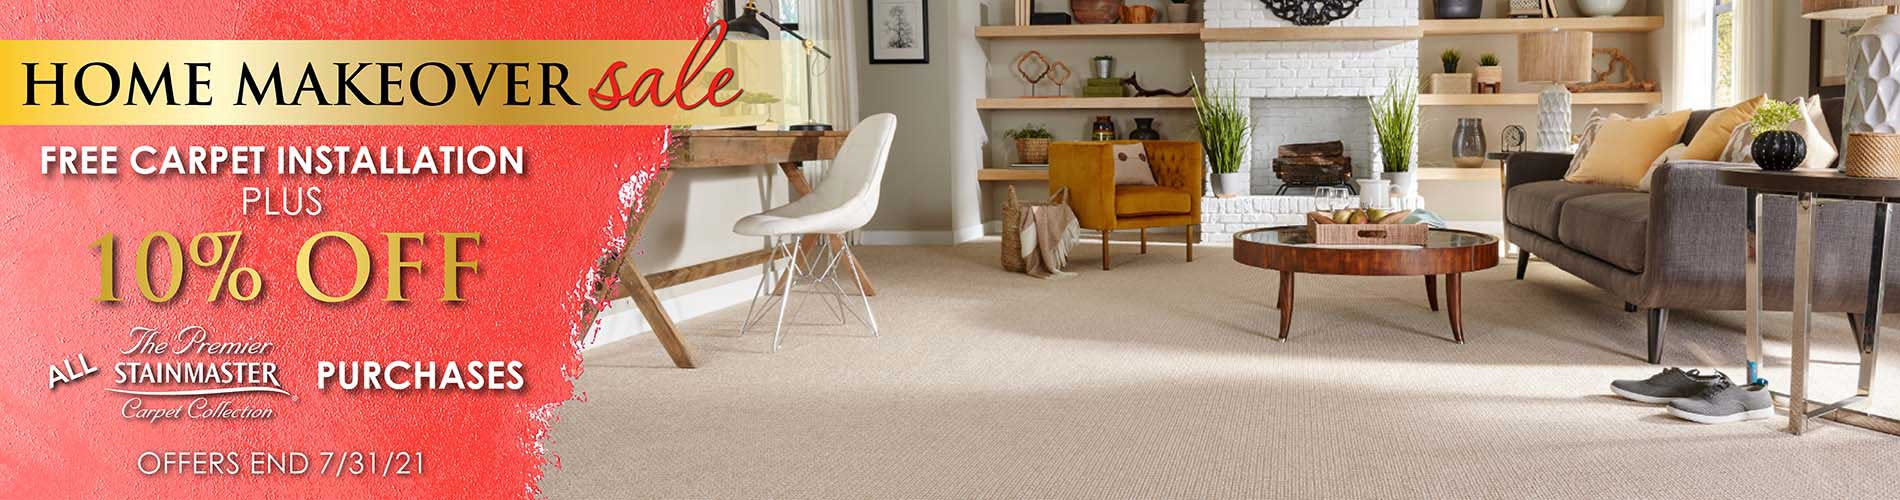 Free carpet installation plus 10% off all STAINMASTER carpet purchases